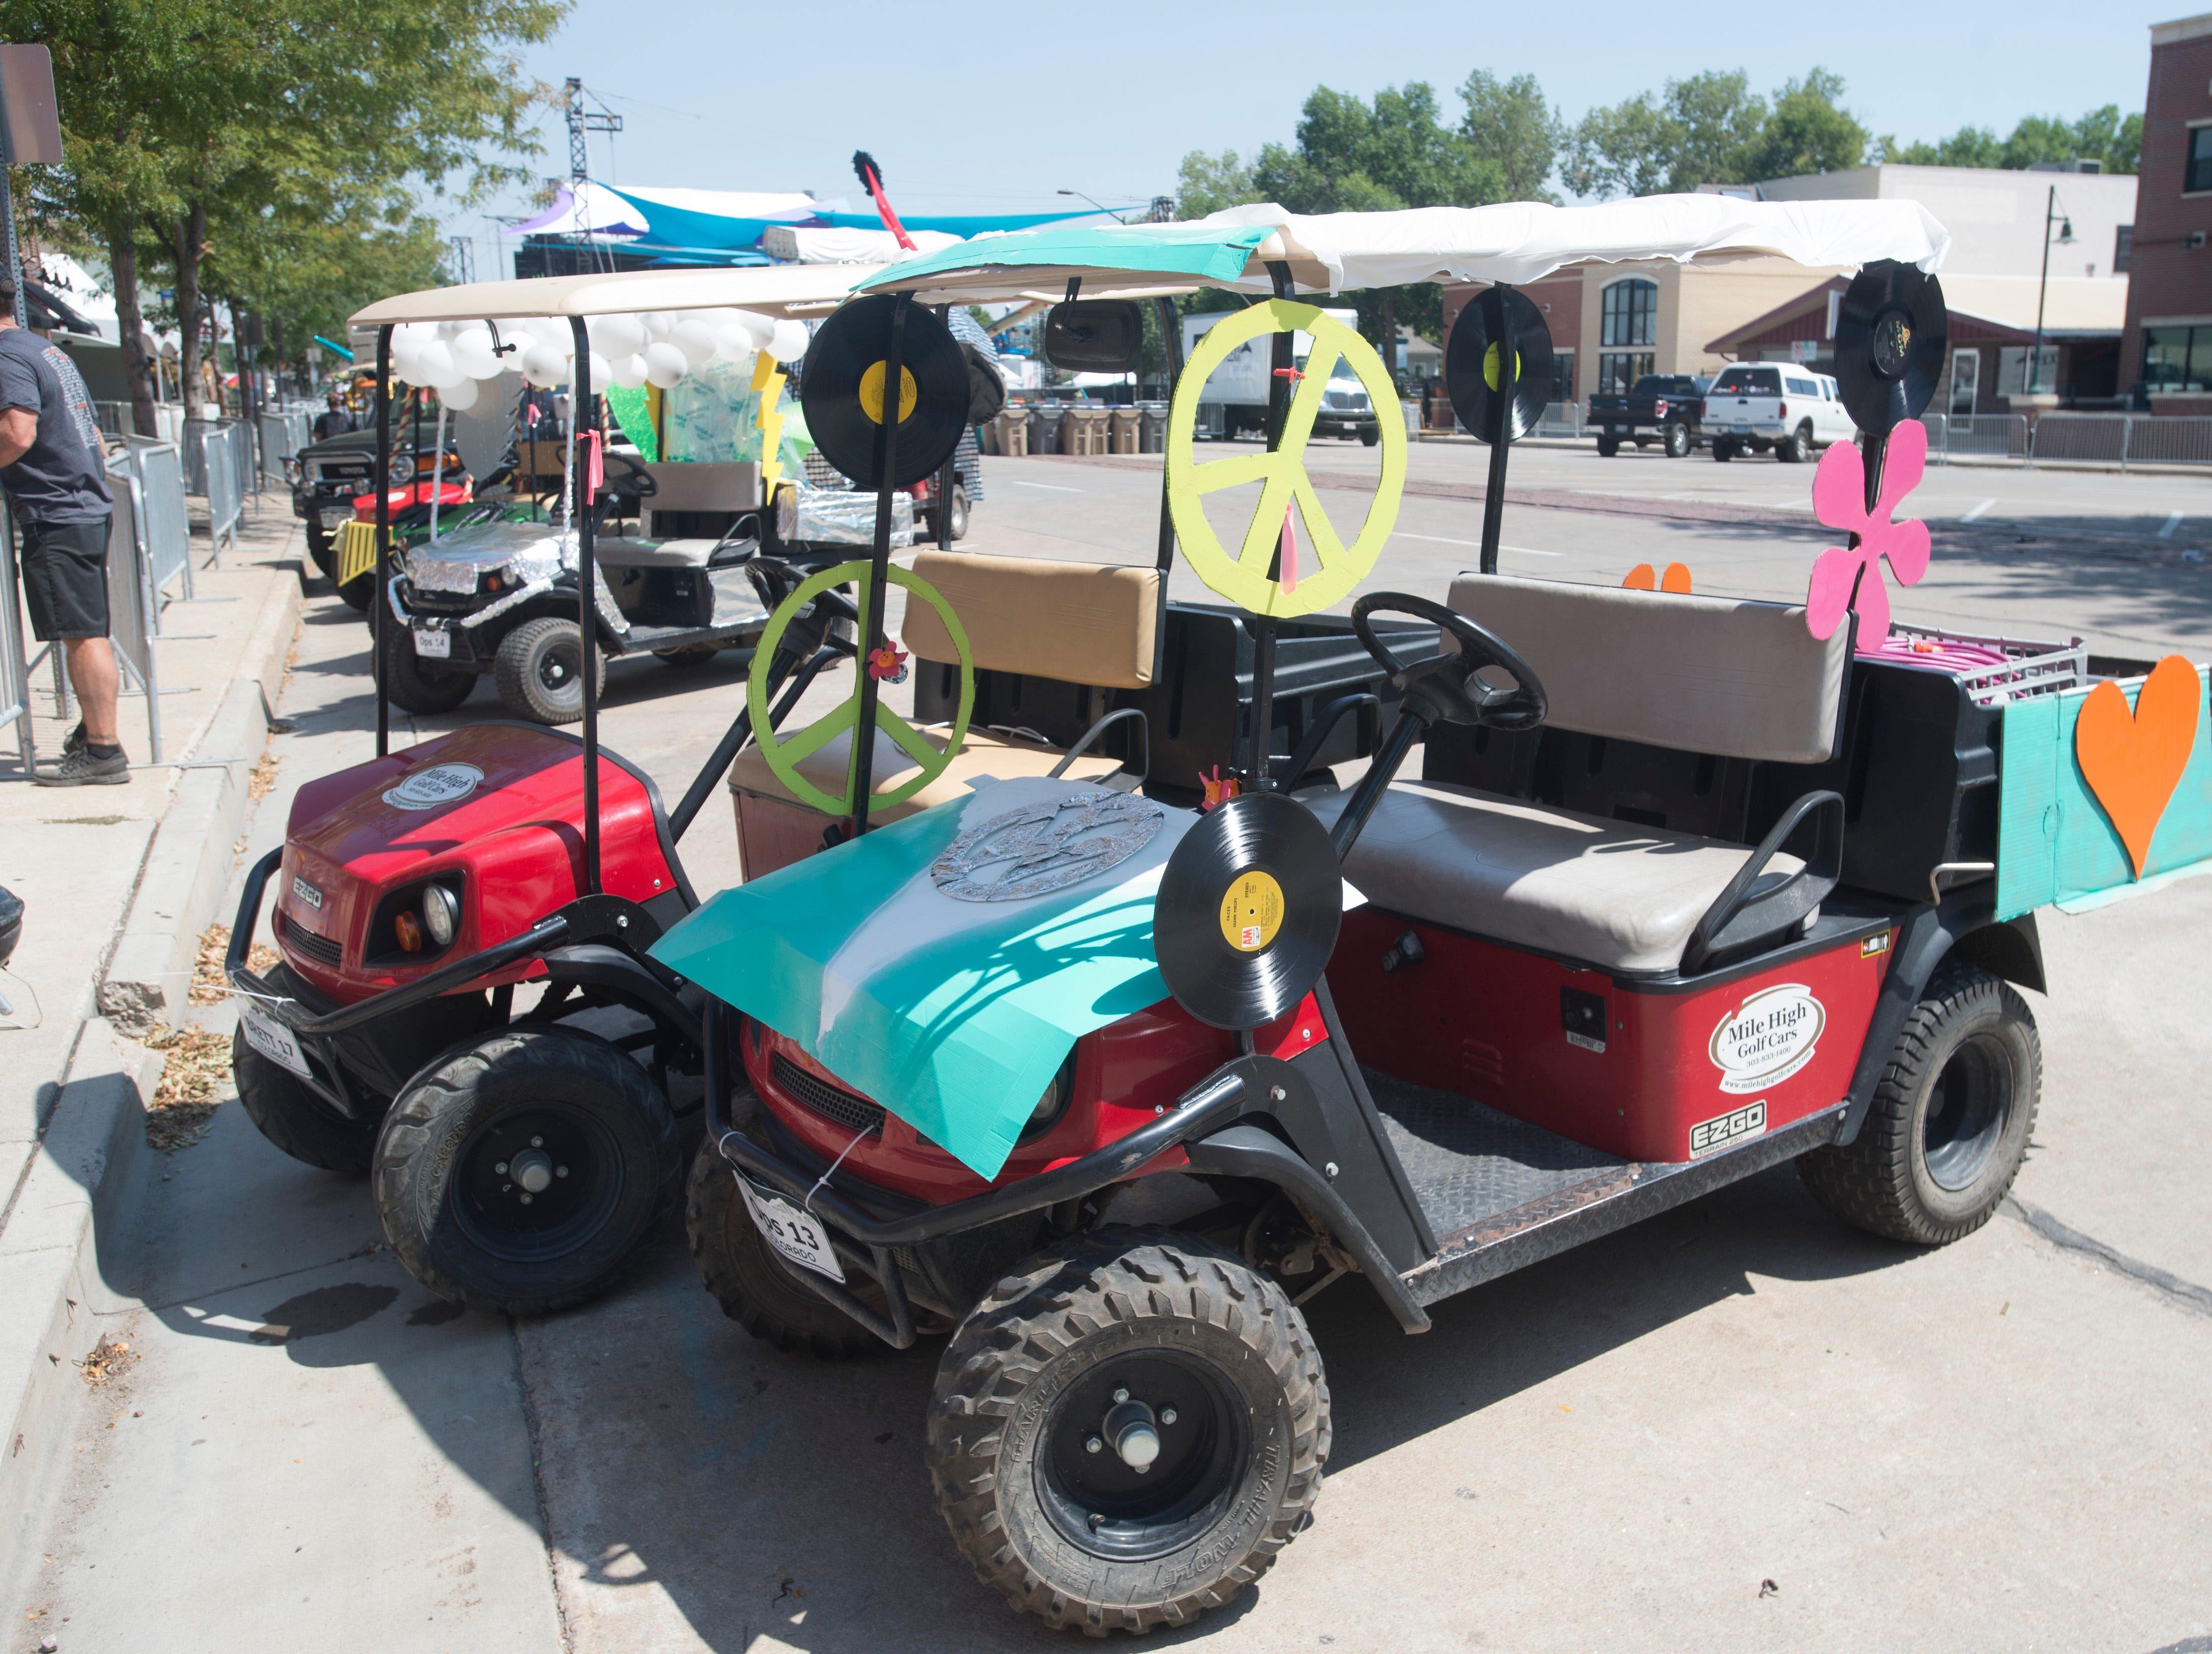 Golf Cart 4: Vote for your favorite NewWestFest decorated golf cart.